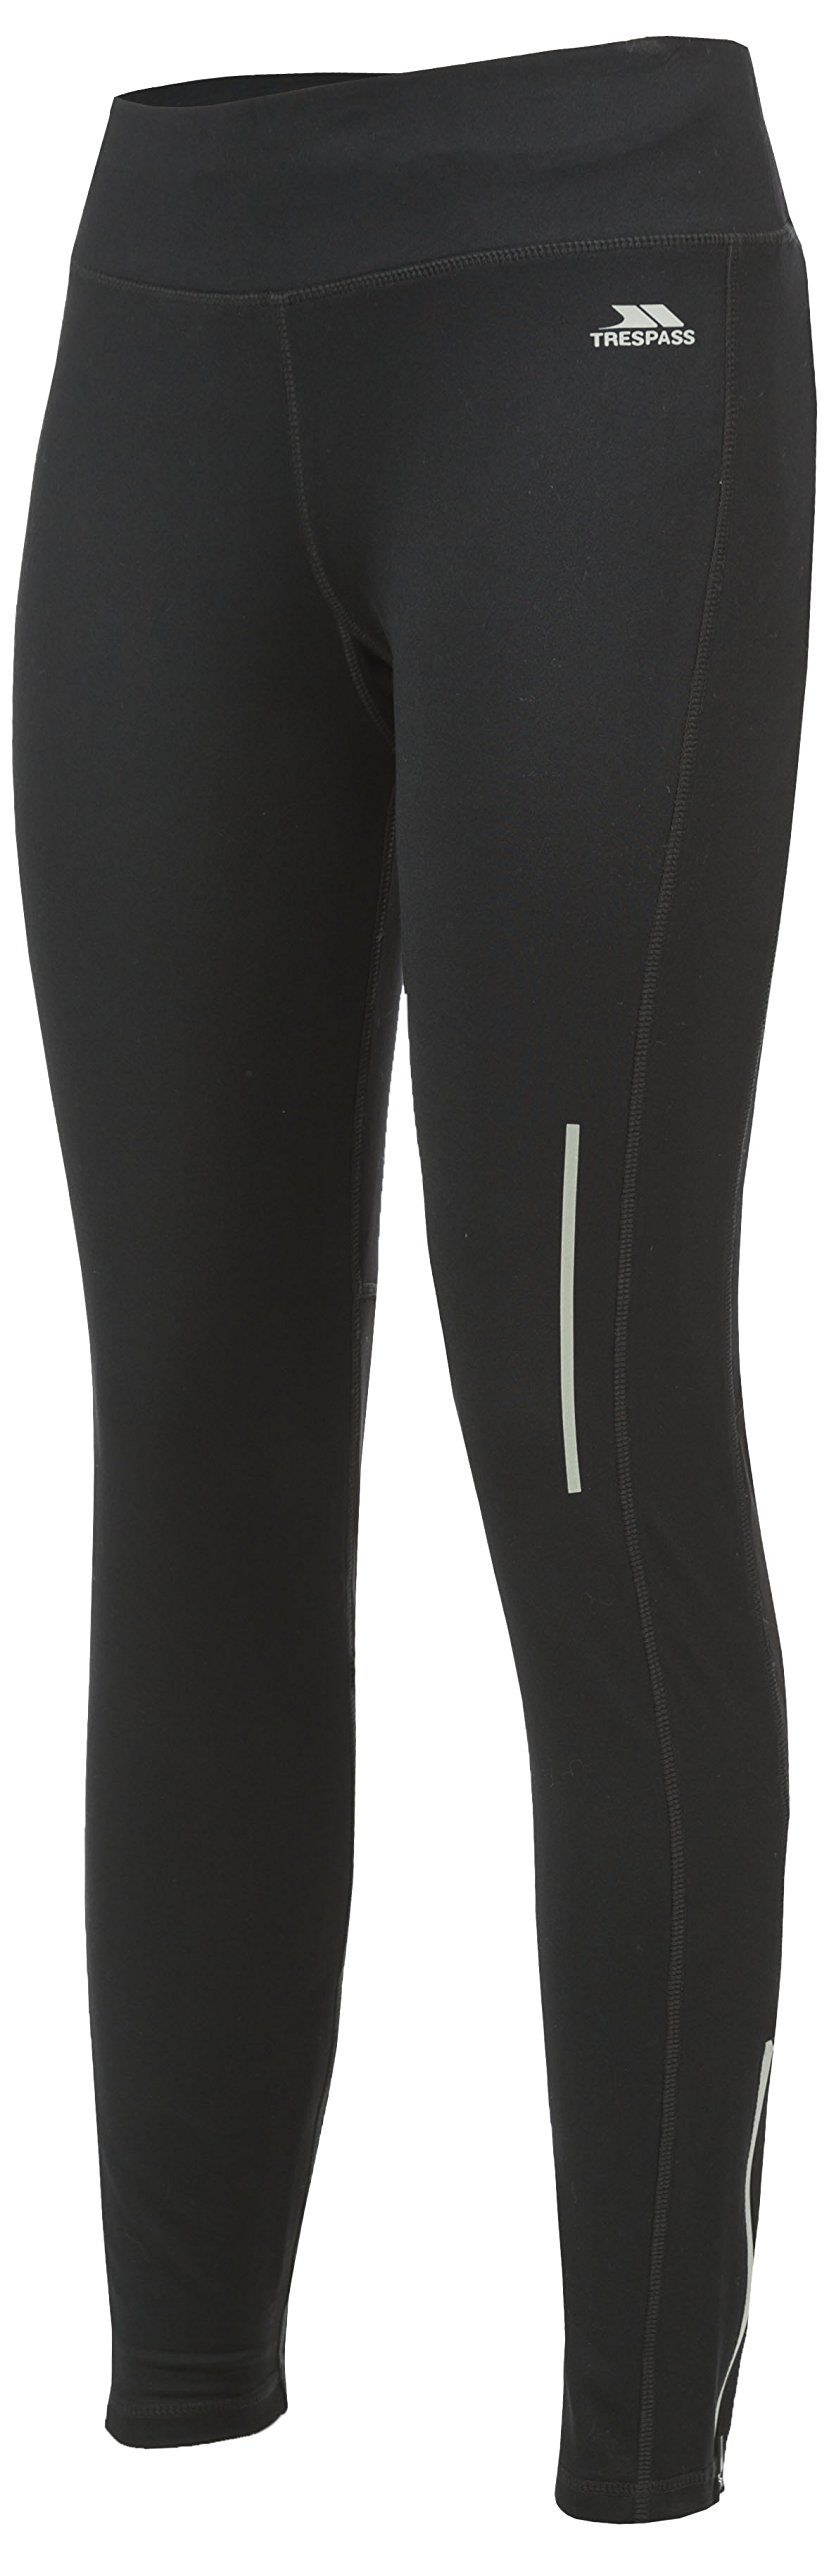 Trespass Women's Pity Active Trousers 1